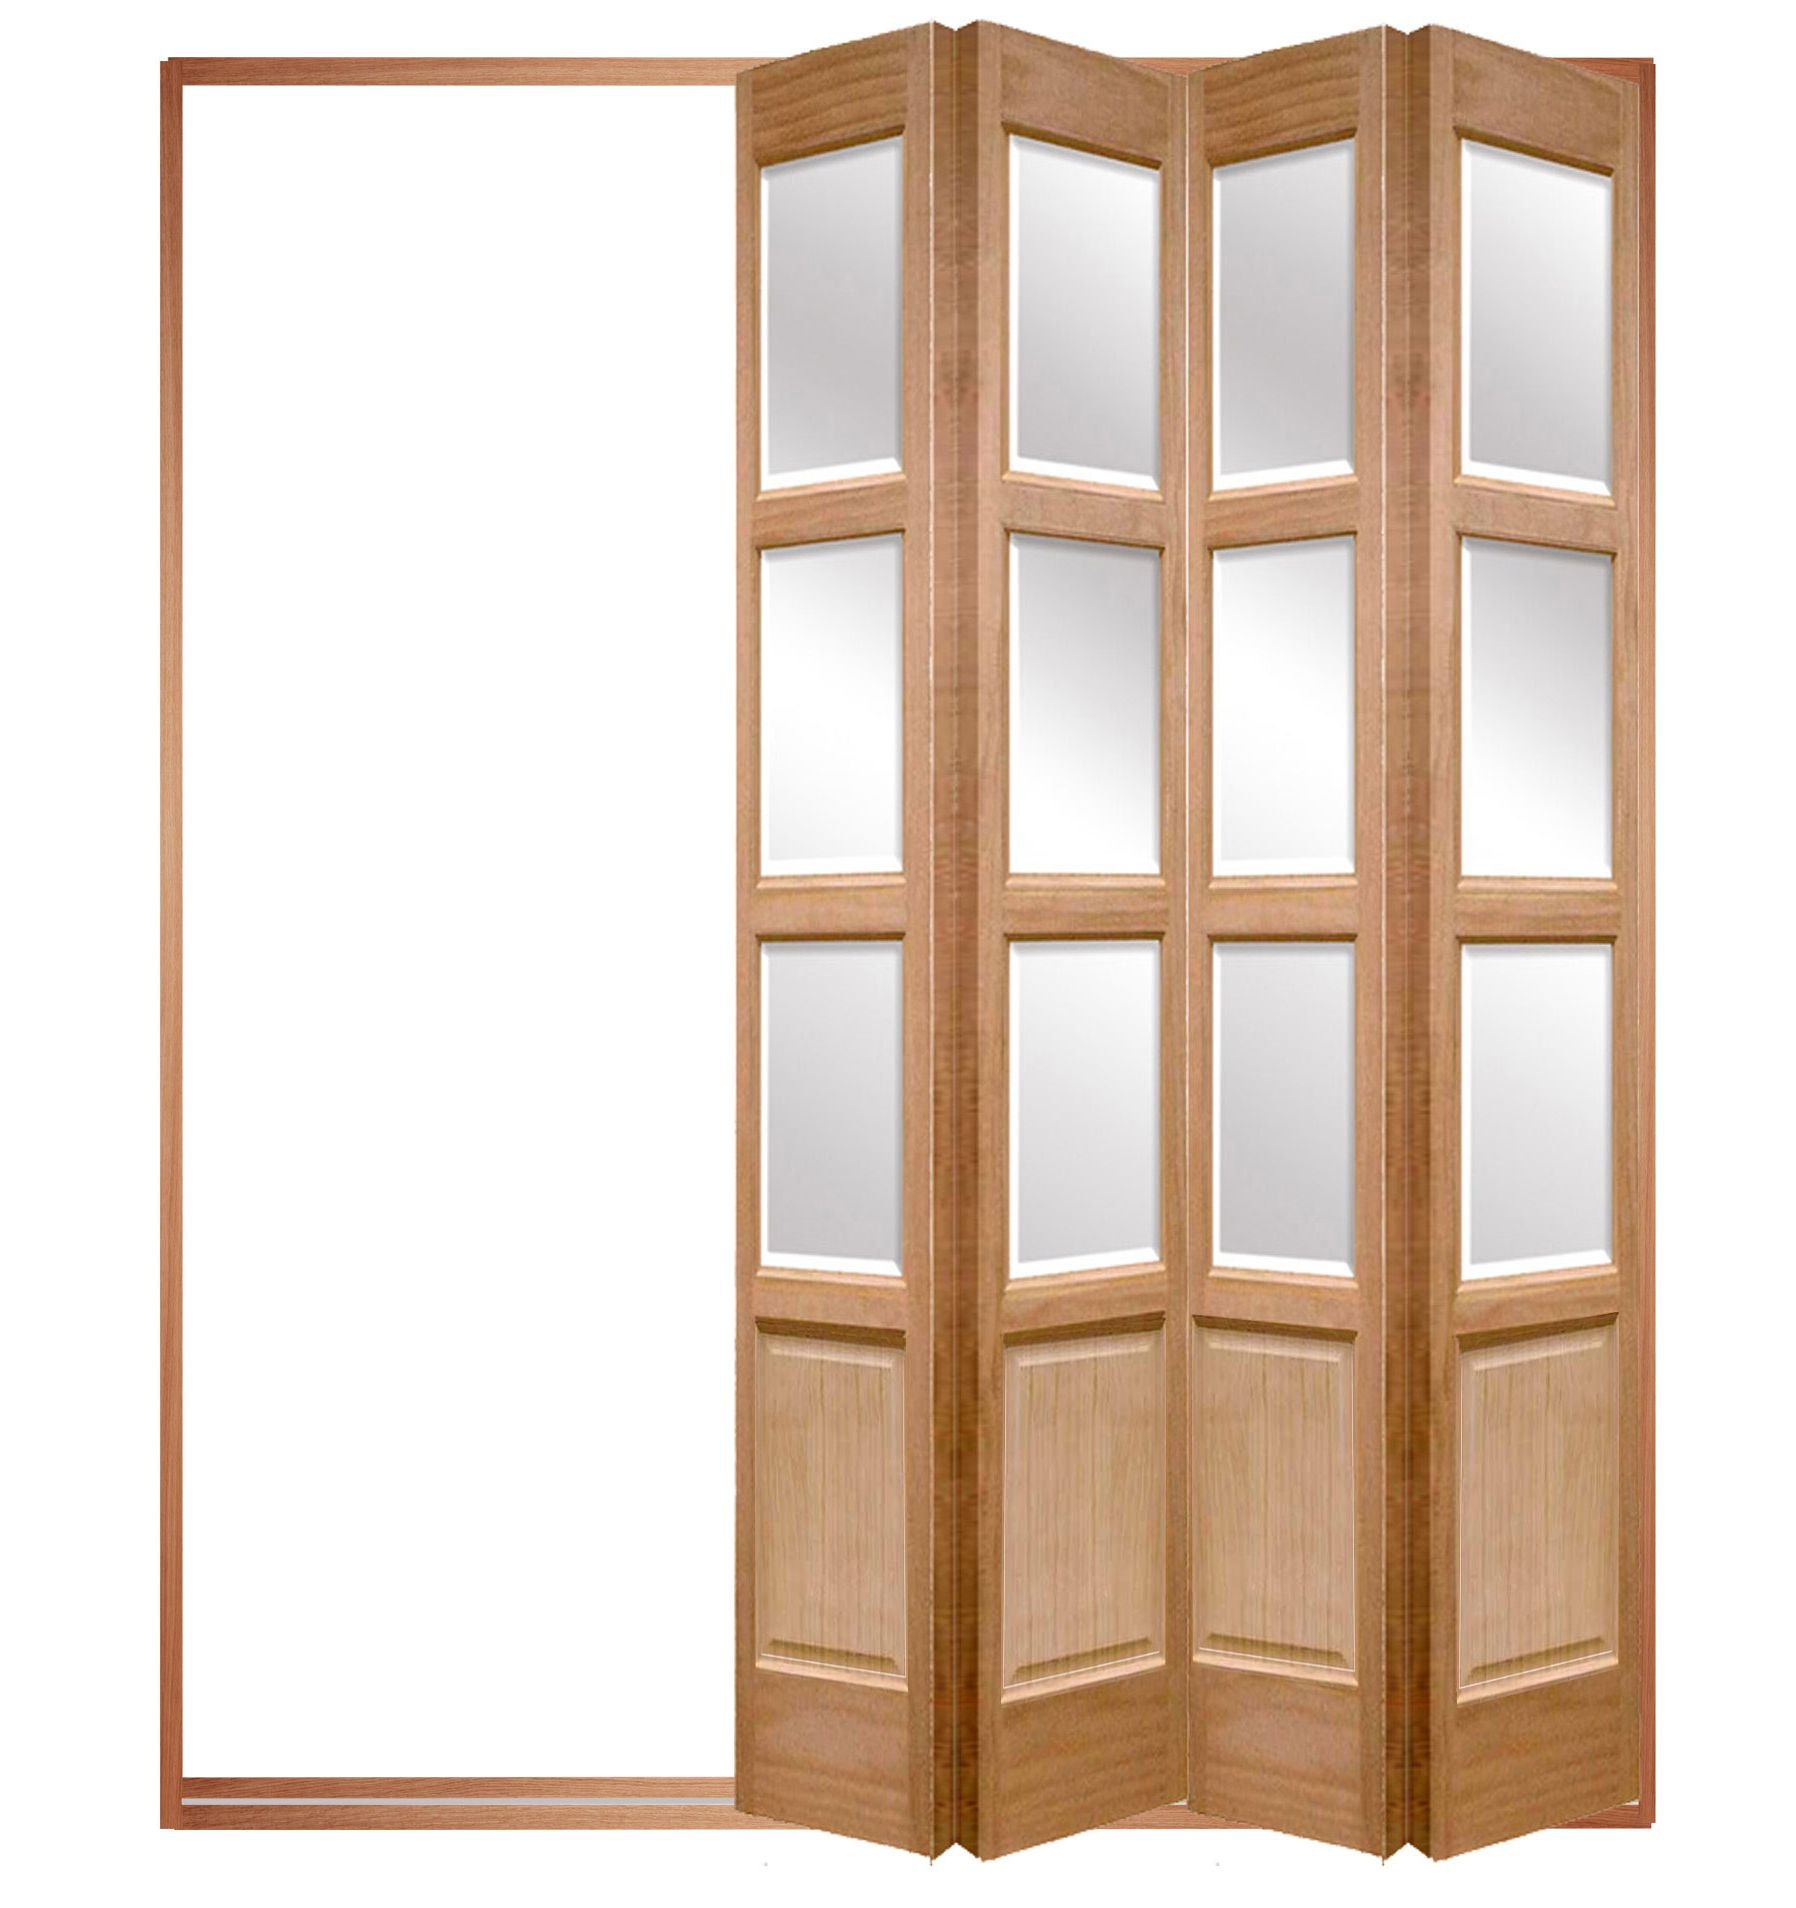 Wooden Folding Doors : Double solid wood interior doors